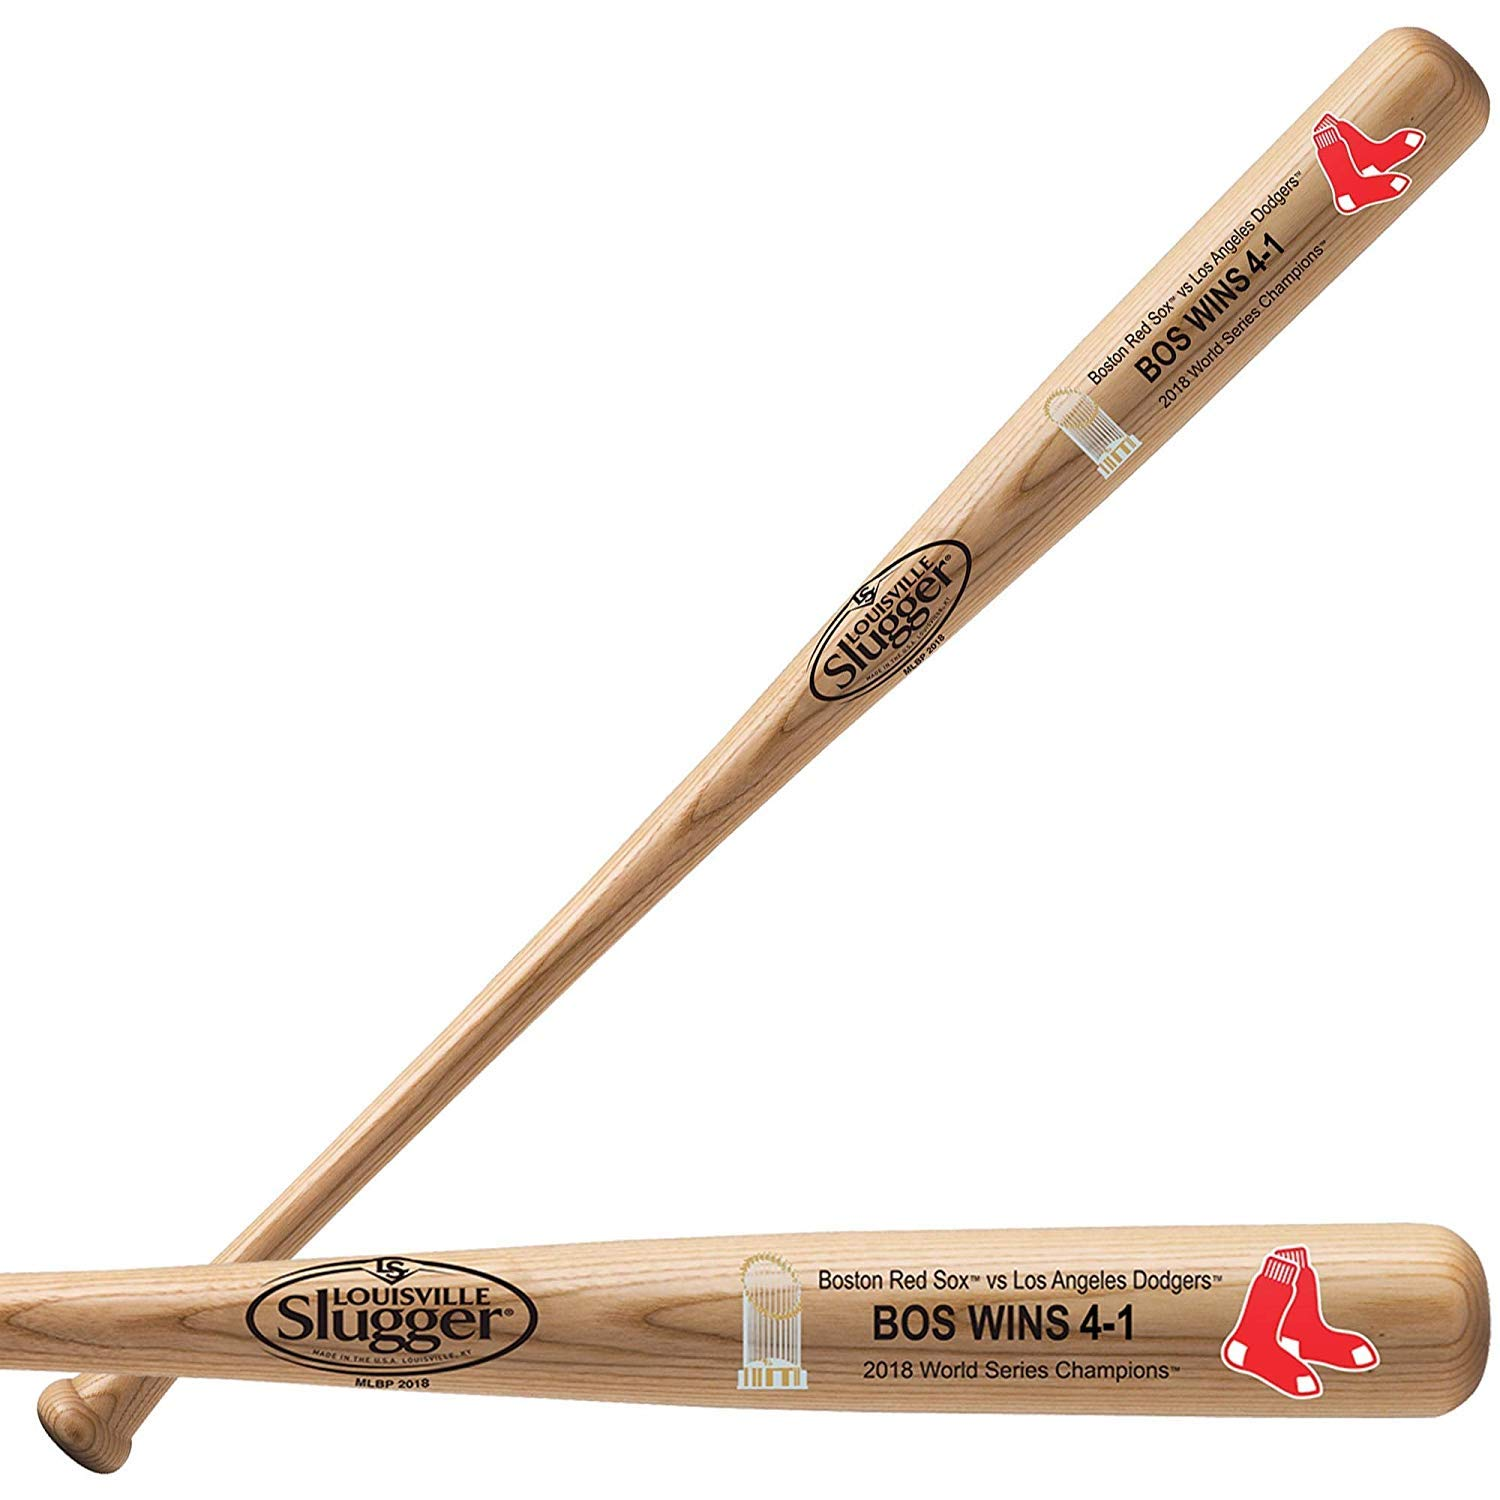 2018 Boston Red Sox World Series Champions Baseball Bat by Louisville Slugger 34' Natural Ash Wood